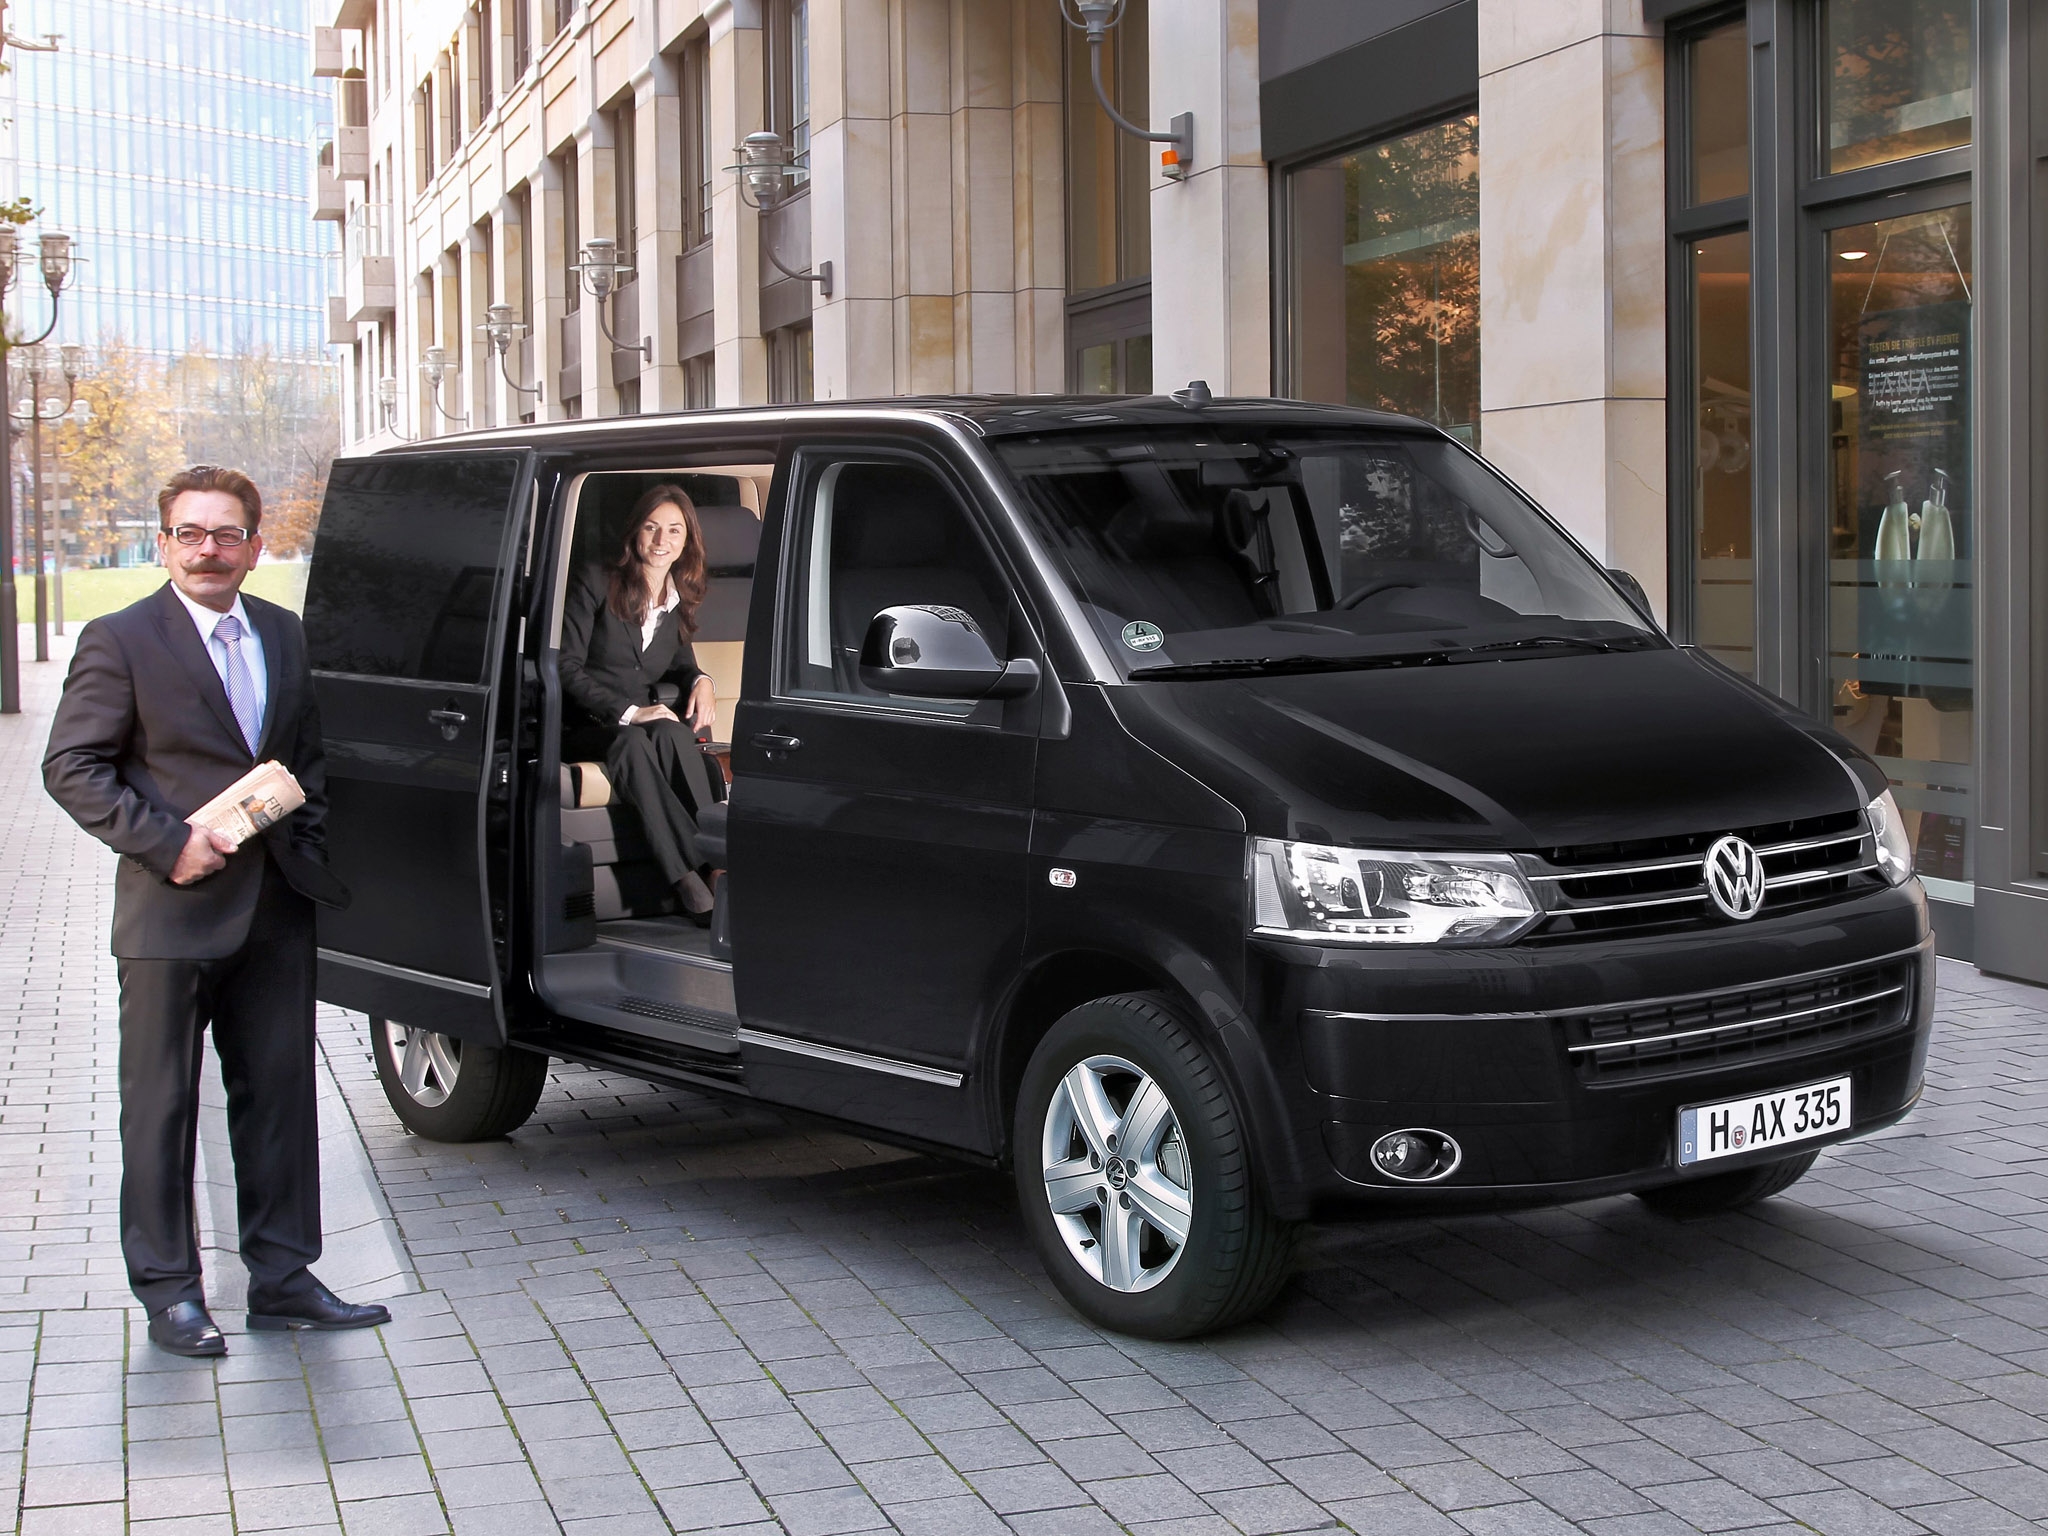 volkswagen t5 multivan business 2011 volkswagen t5 multivan business 2011 photo 05 car in. Black Bedroom Furniture Sets. Home Design Ideas